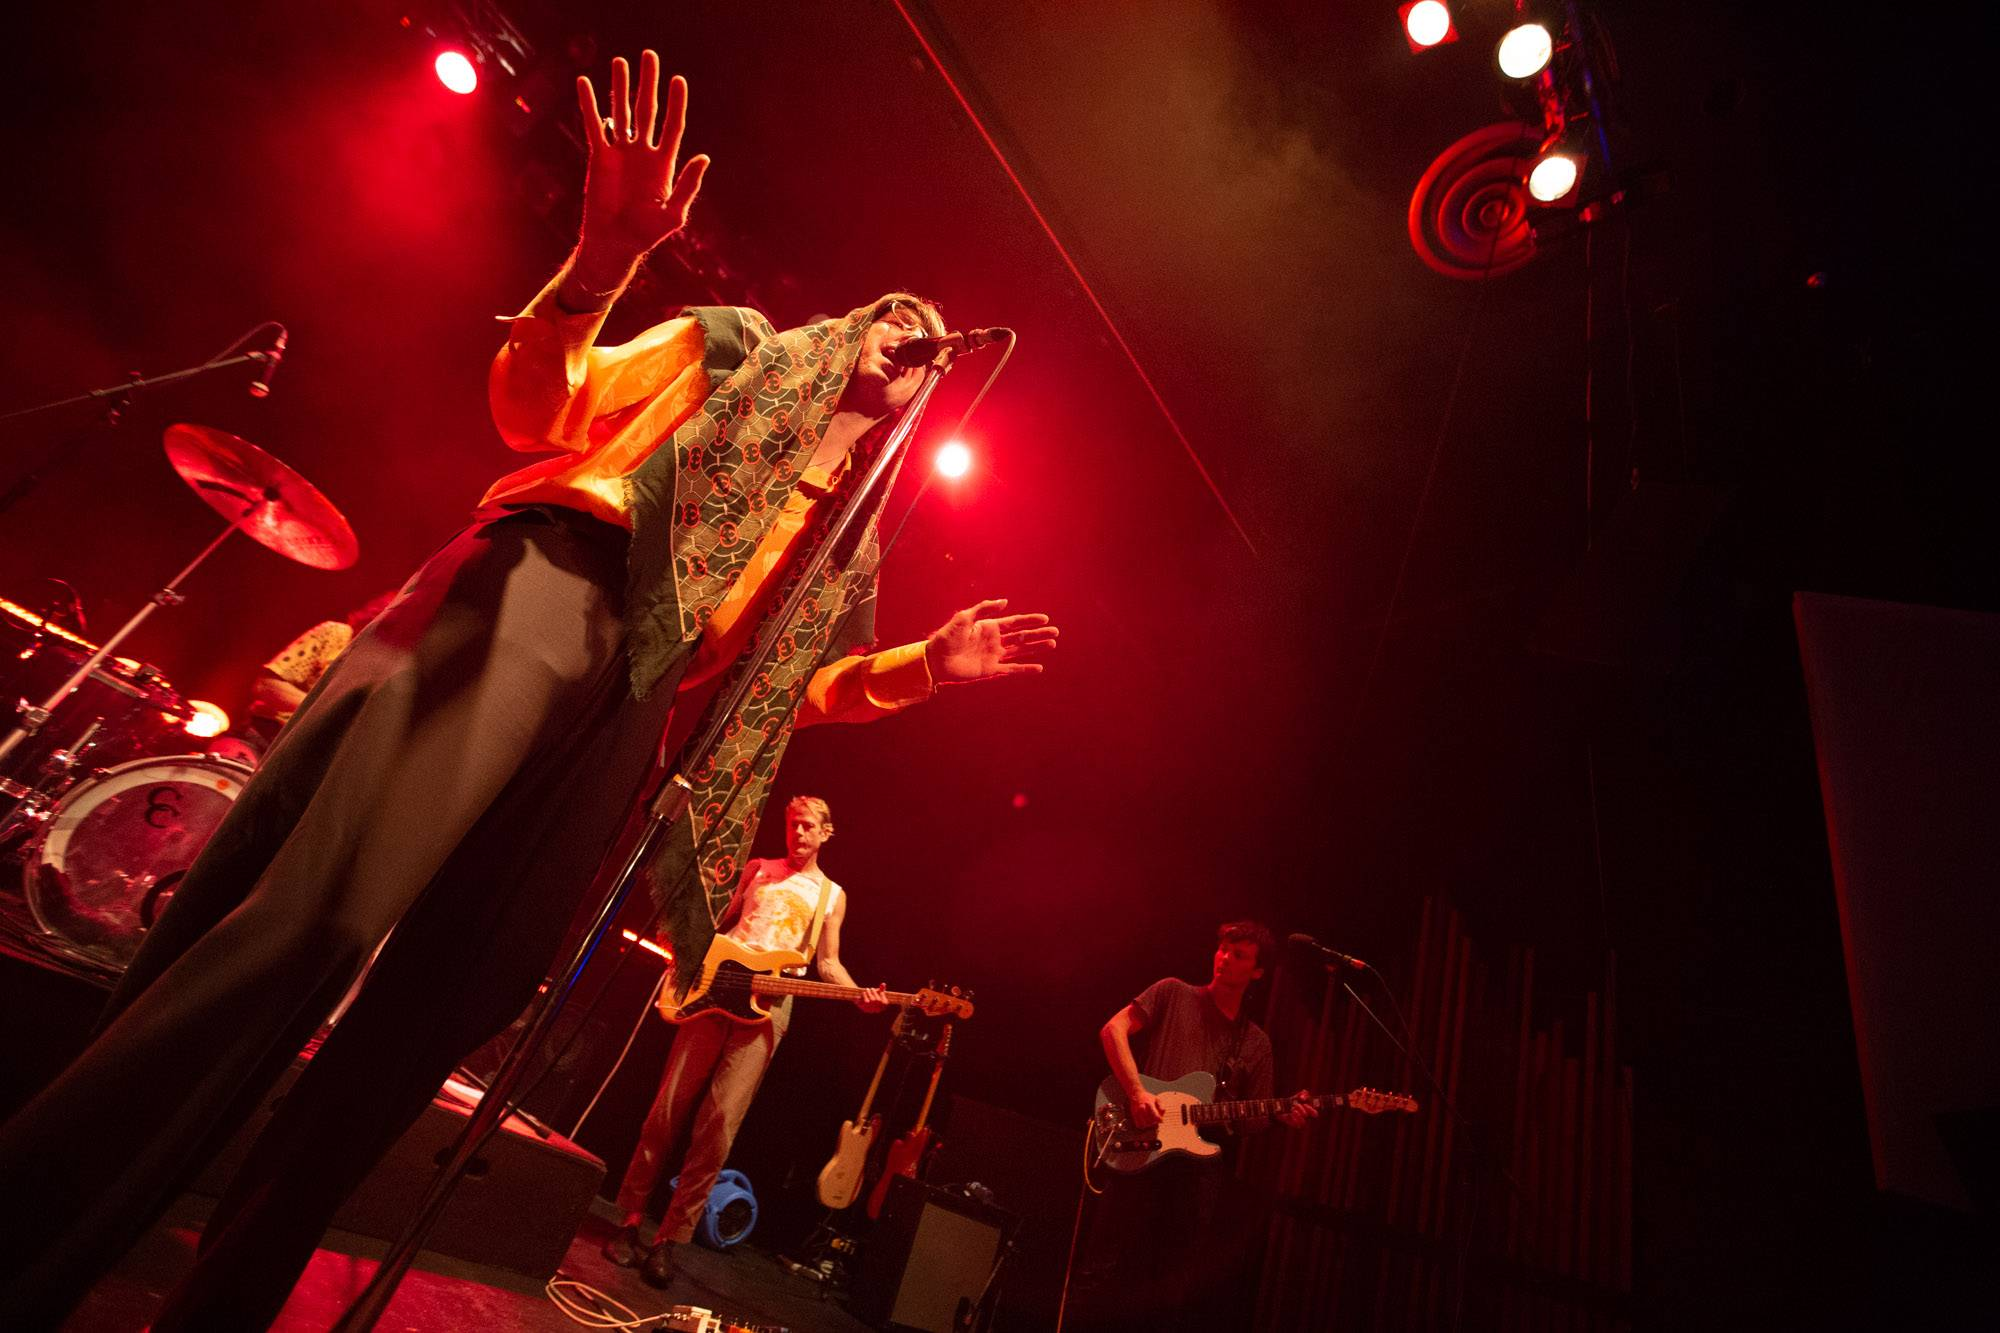 Deerhunter at the Rickshaw Theatre, Vancouver, Jul 22 2019. Kirk Chantraine photo.